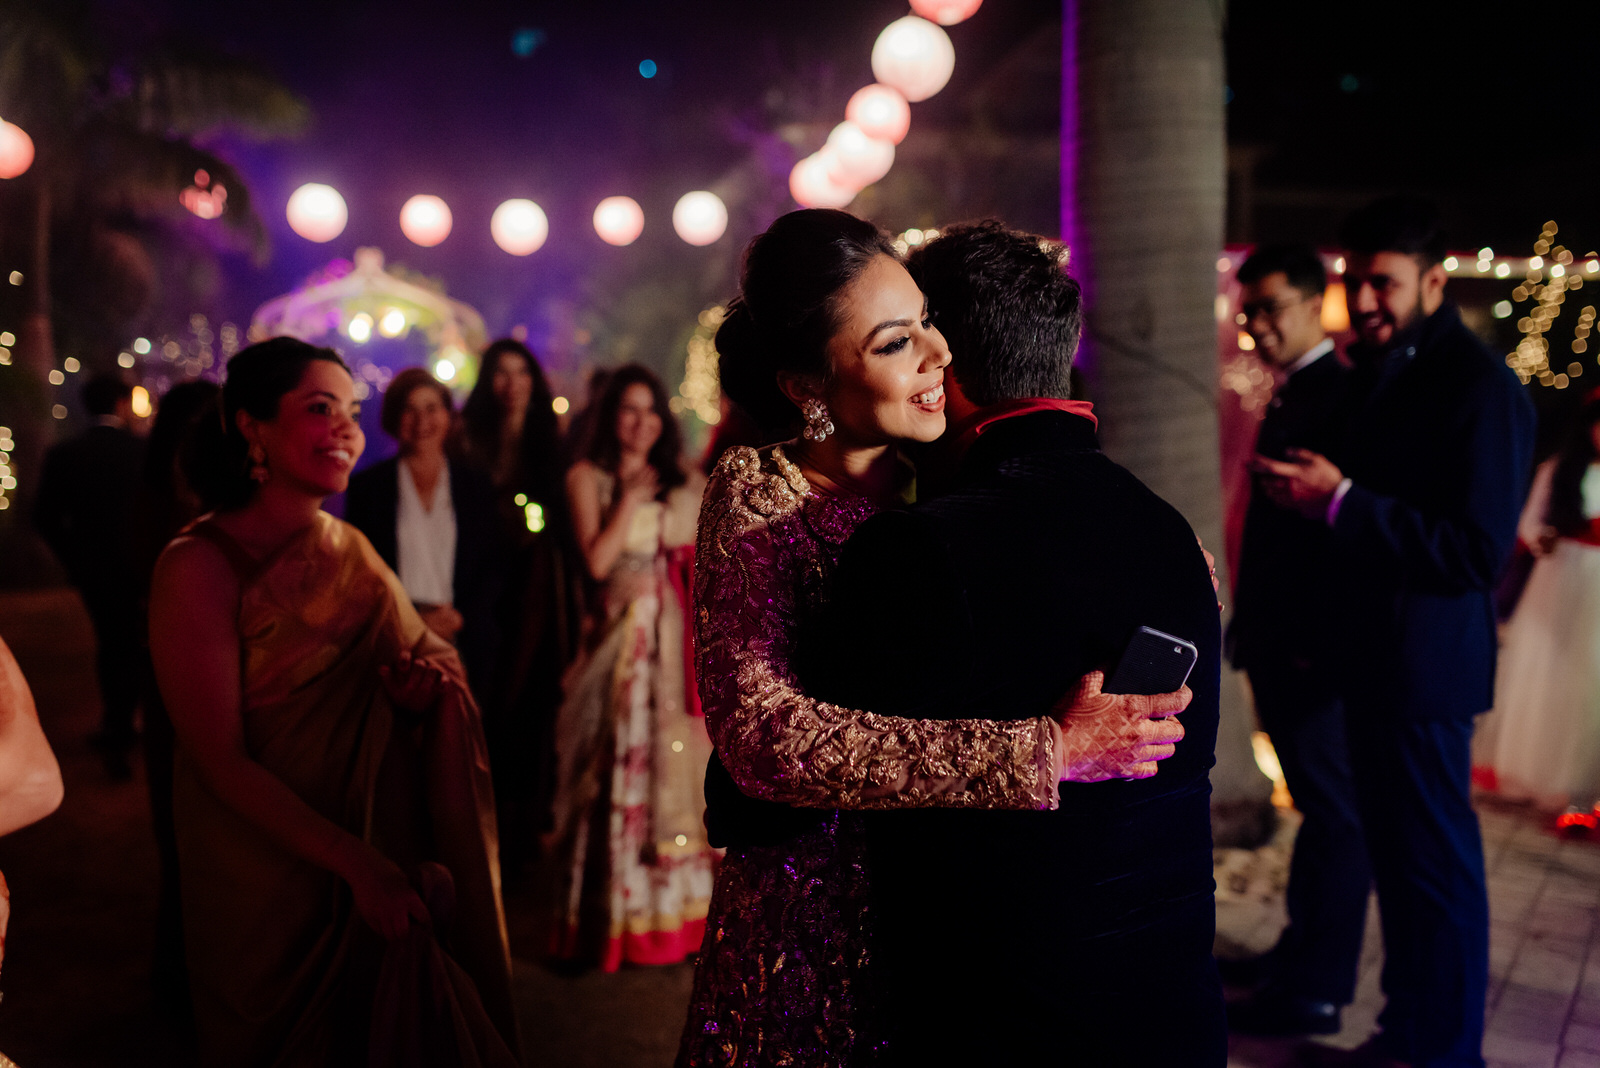 Engagement Chandigarh-149.jpg